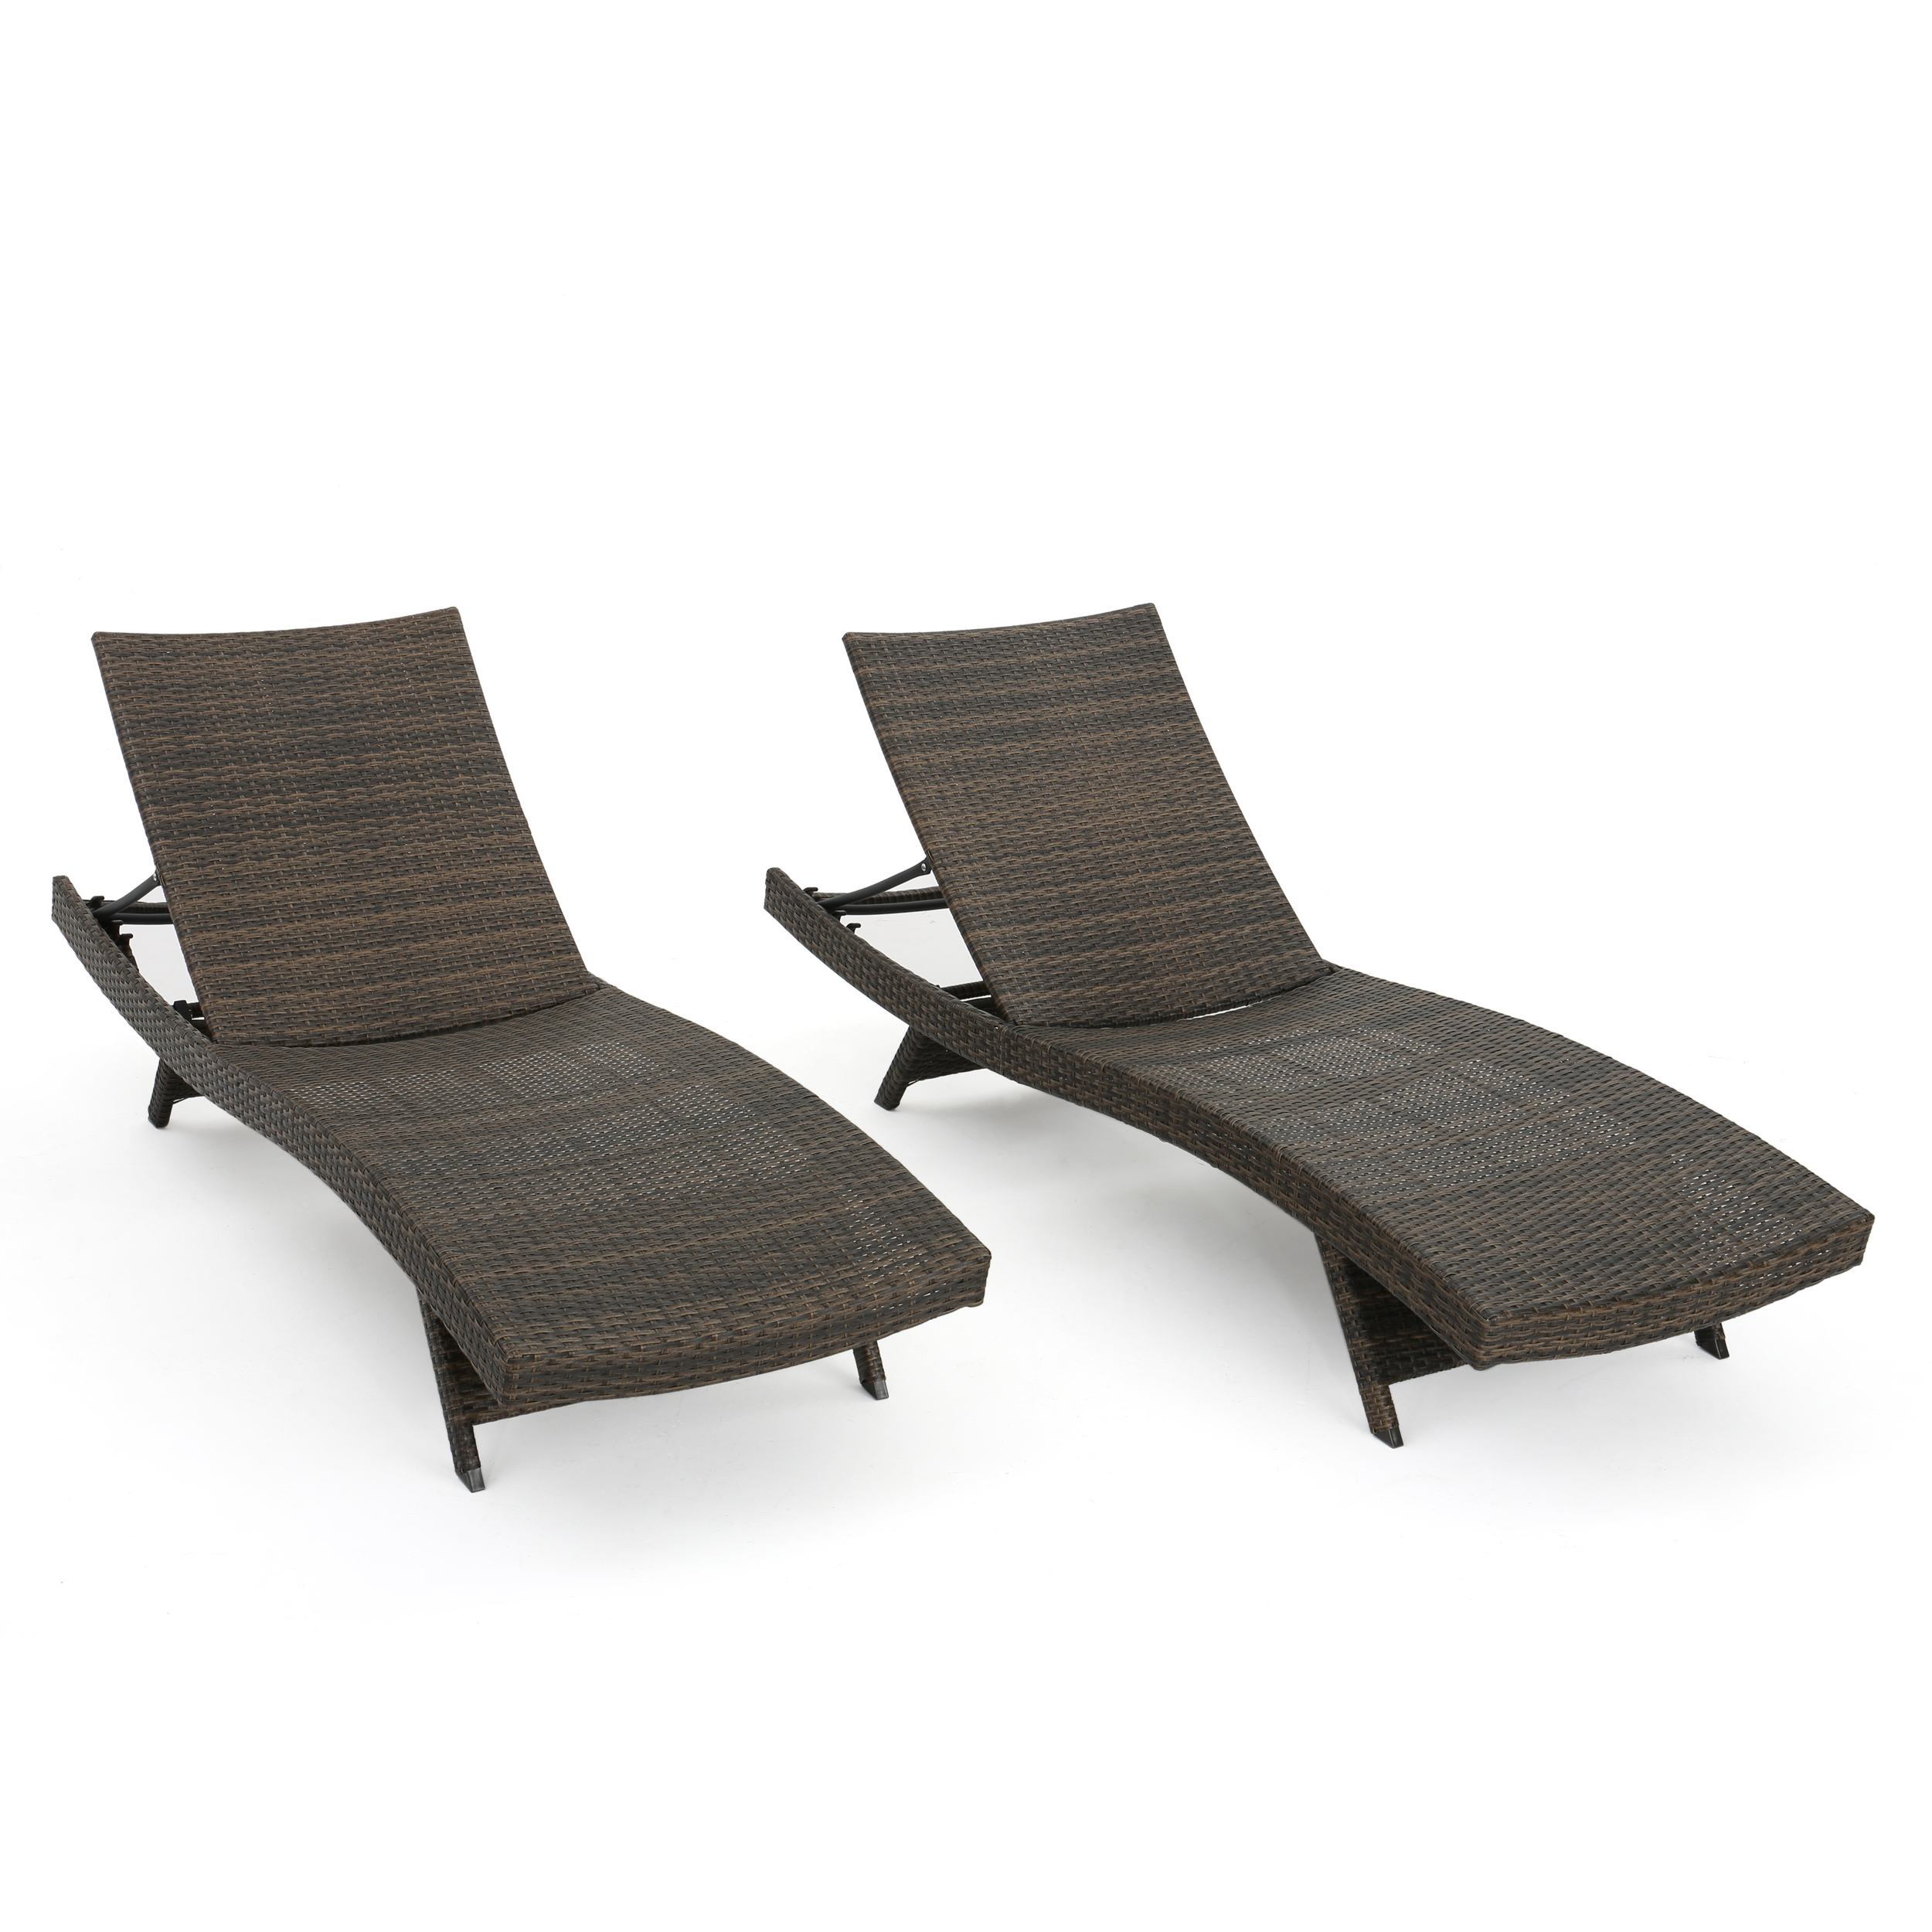 Preferred Outdoor Aluminum Chaise Lounges Intended For Thelma Outdoor Aluminum Wicker Chaise Lounge, Set Of 2, Mixed Mocha (View 8 of 25)